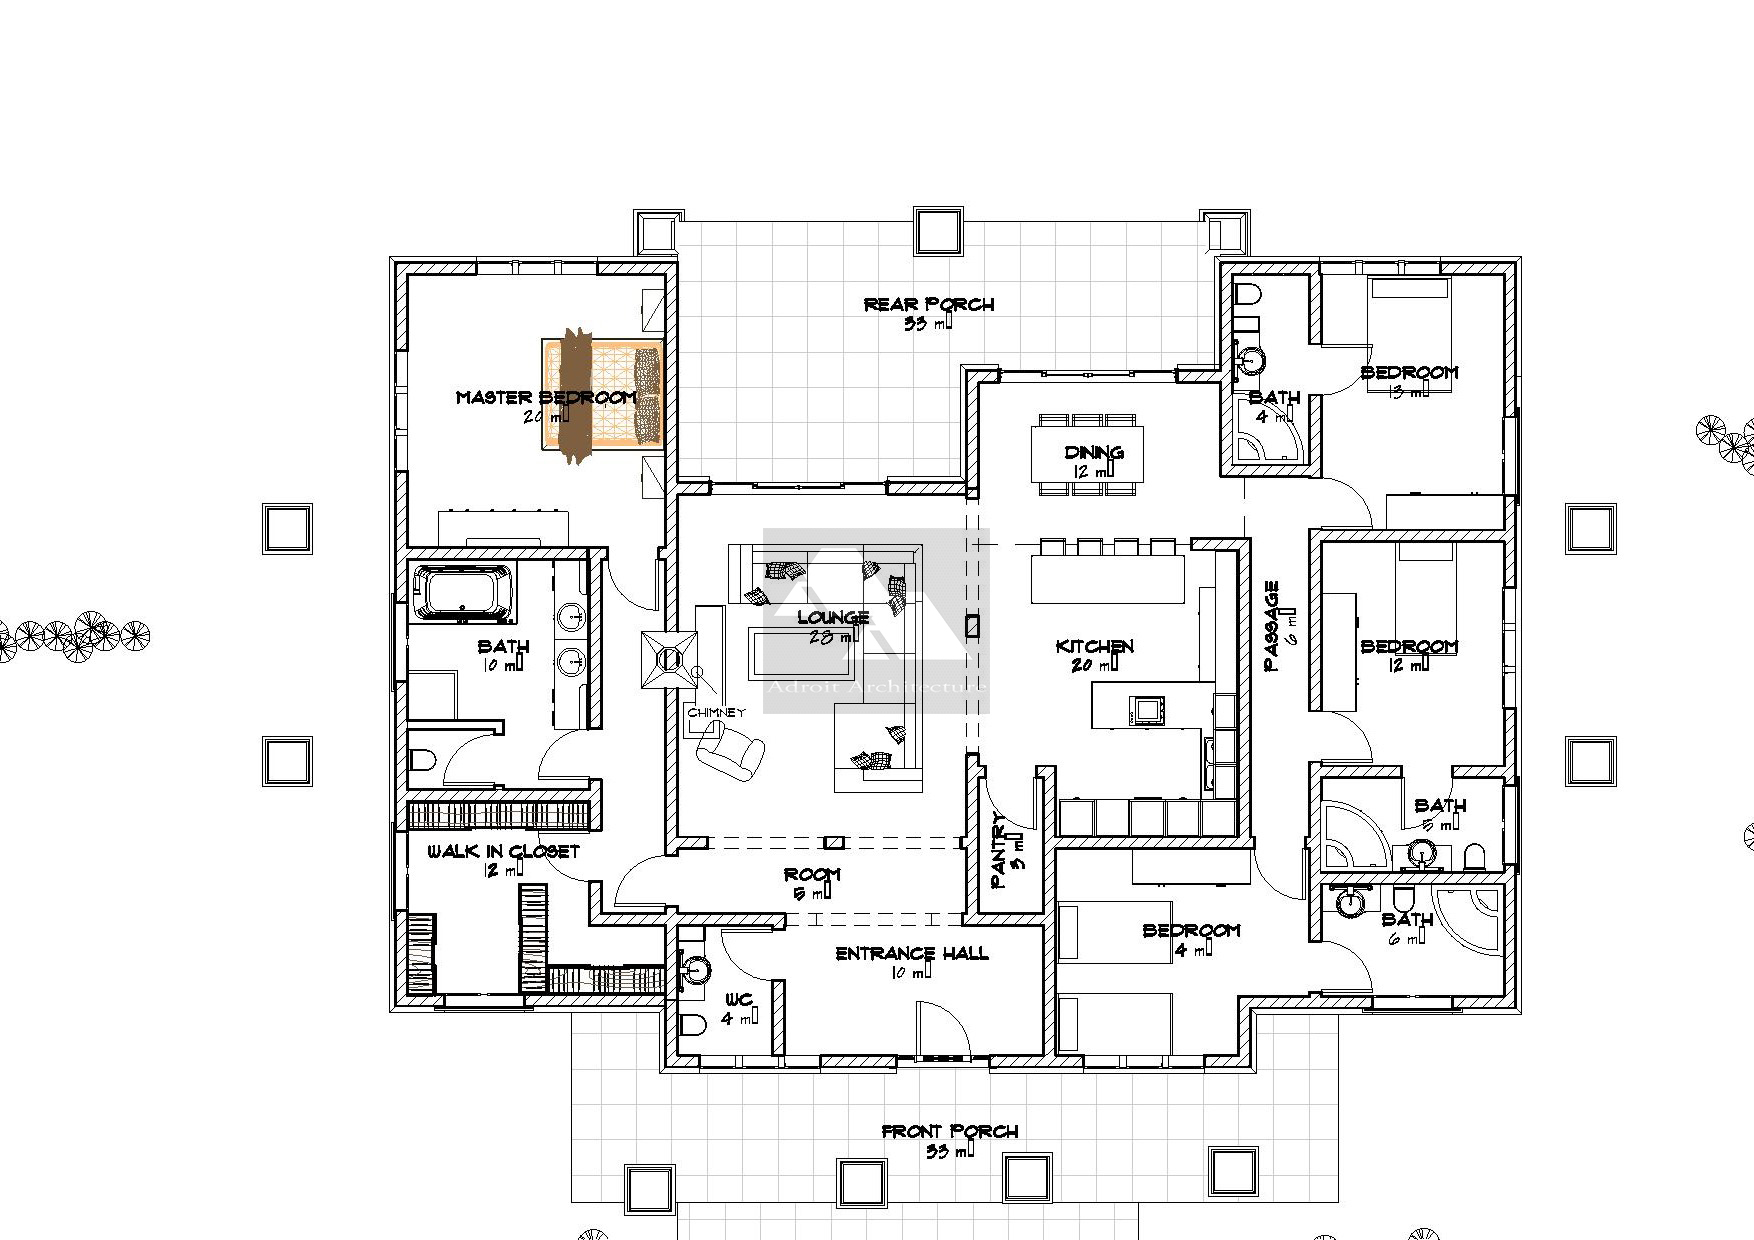 4 bedroom floor plans david chola architect arched 4 bedroom bungalow 2524